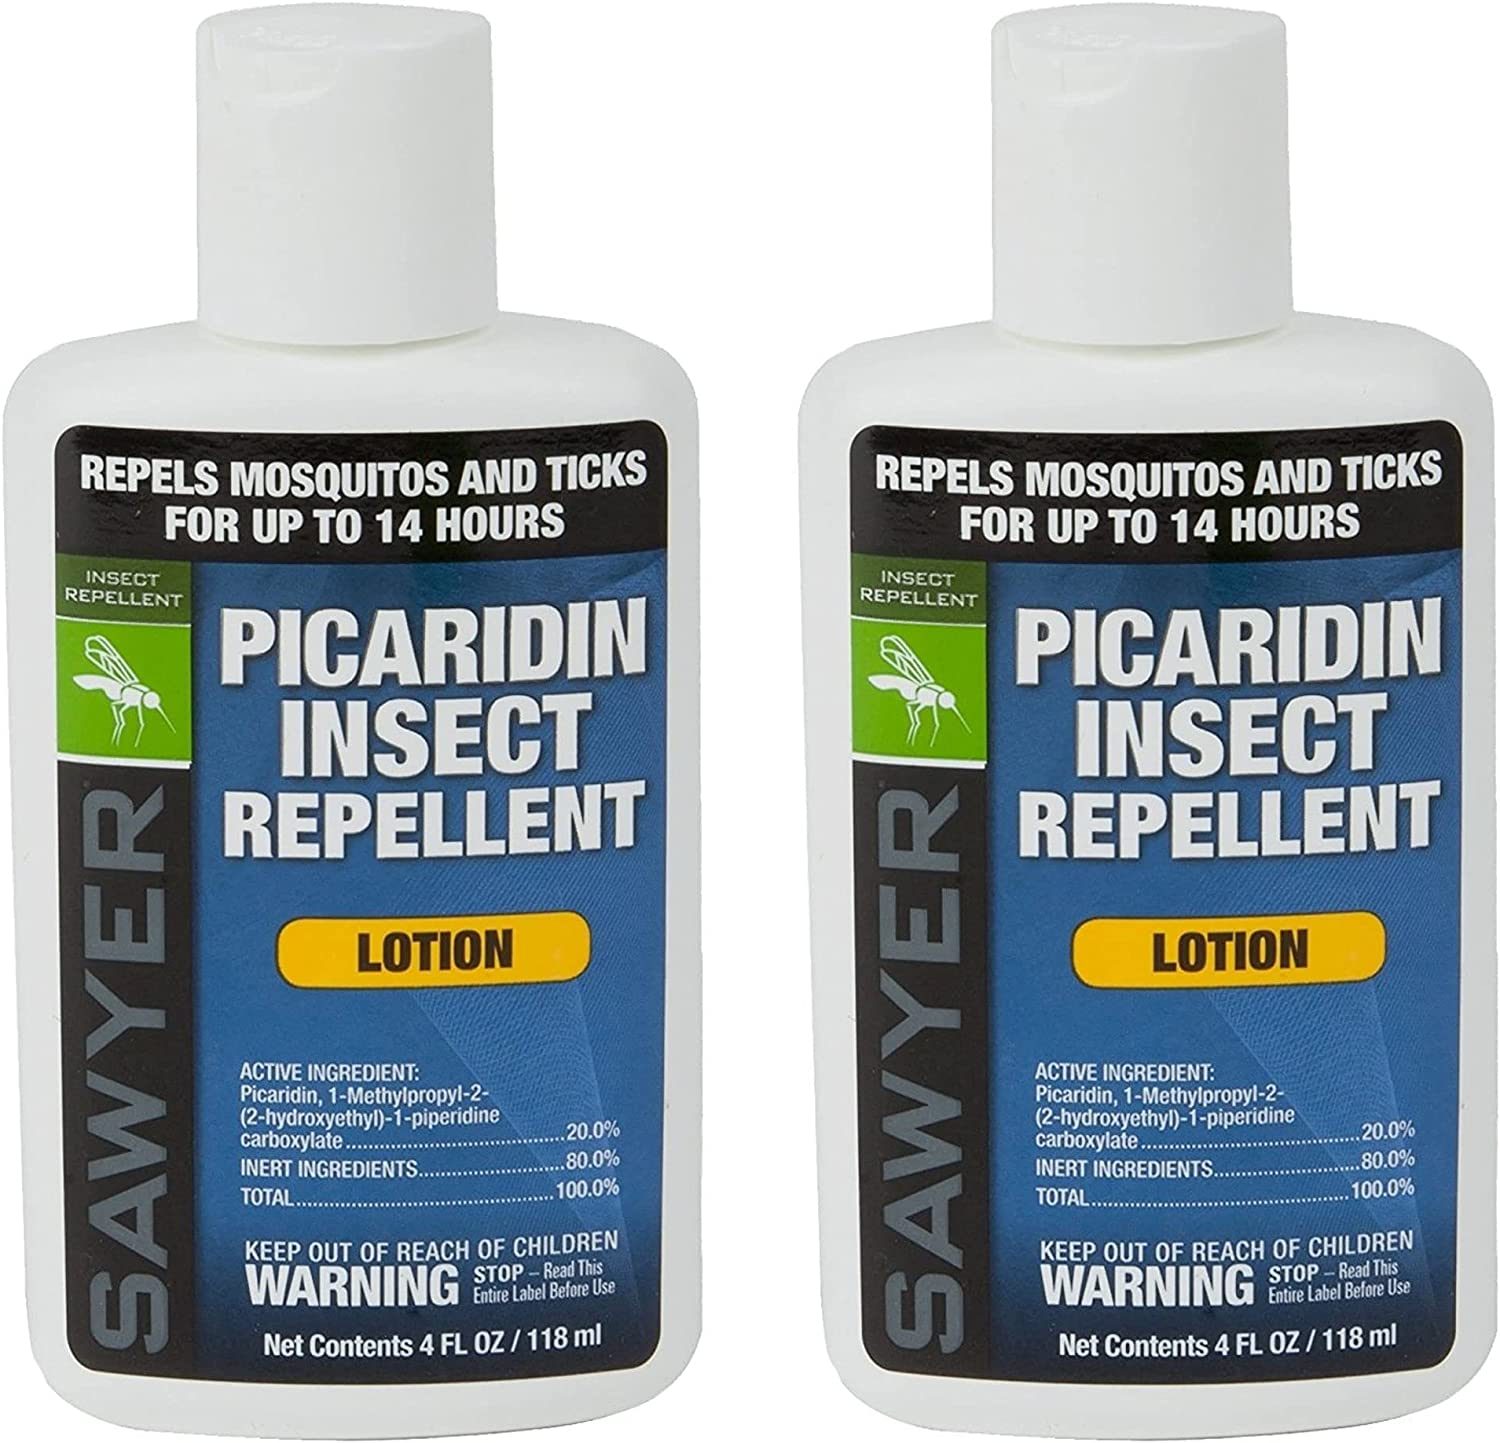 Sawyer Products SP5642 20% Picaridin Insect Repellent, Lotion, 4-Ounce, Twin Pack: Sports & Outdoors